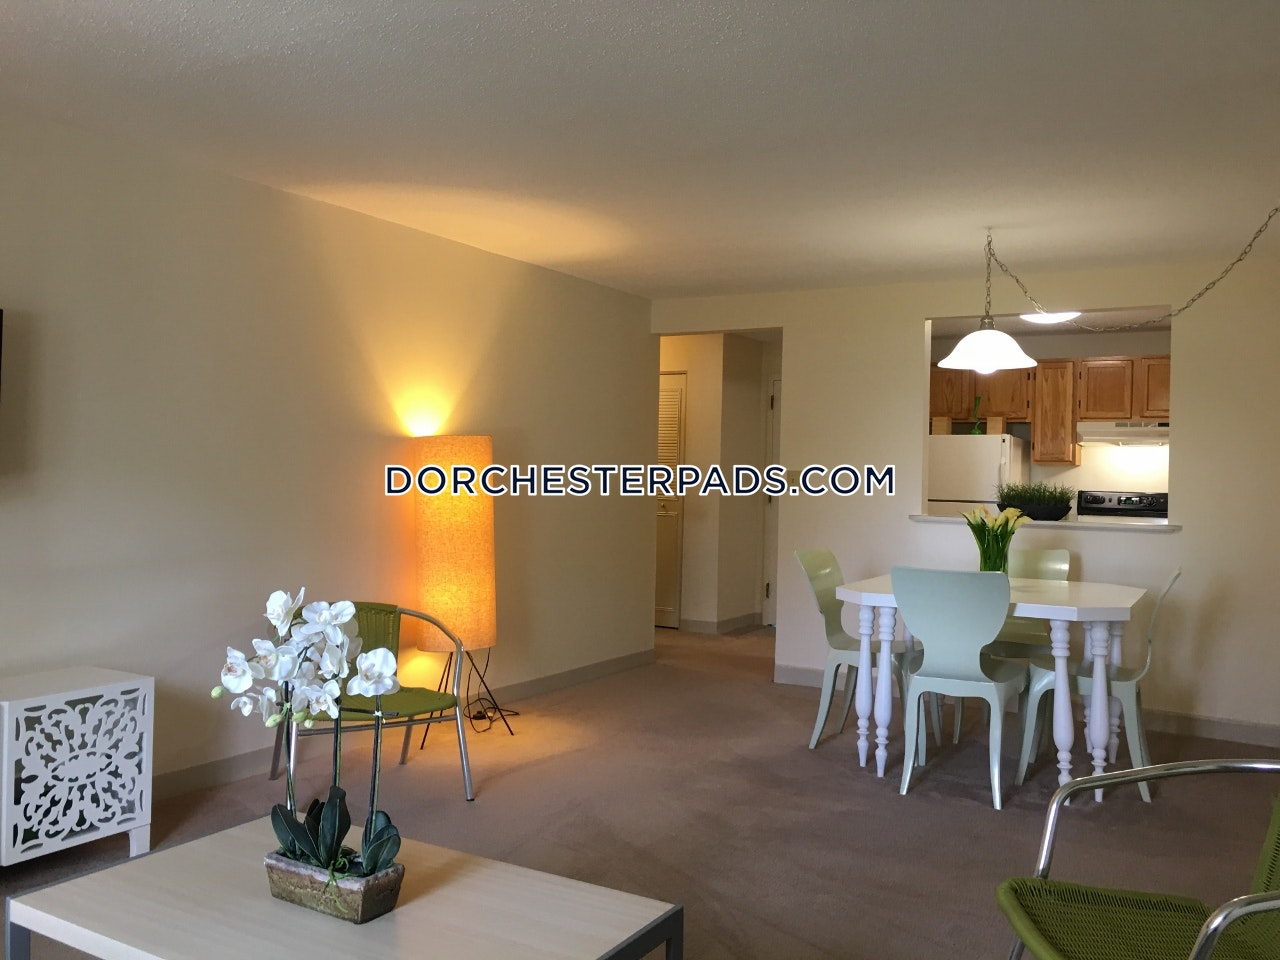 Dorchester Apartments | Dorchester Apartment for rent 1 ...